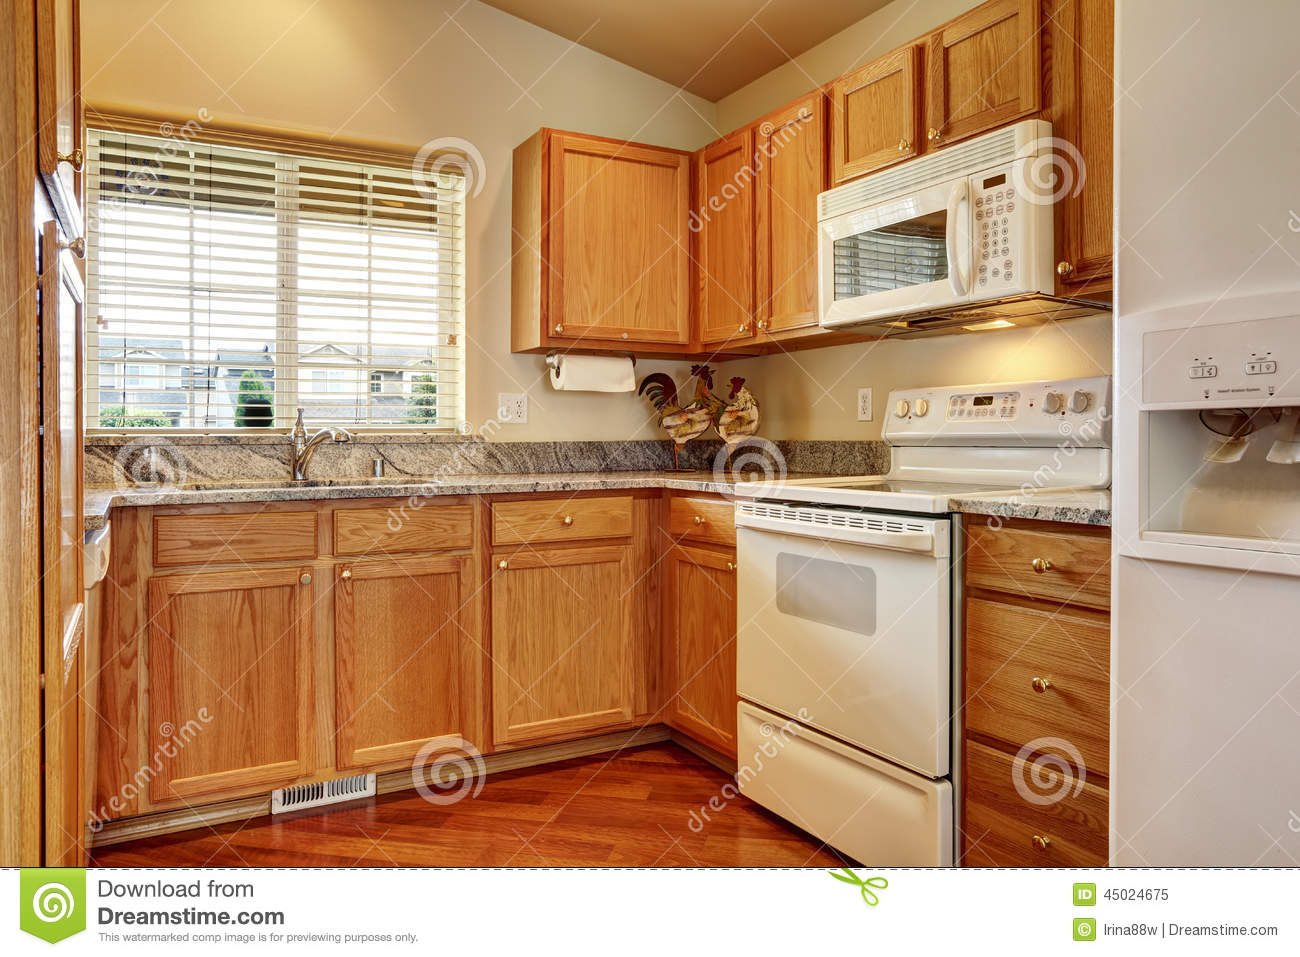 Kitchen Remodel With White Appliances: Small Kitchen Area With White Appliances Stock Image